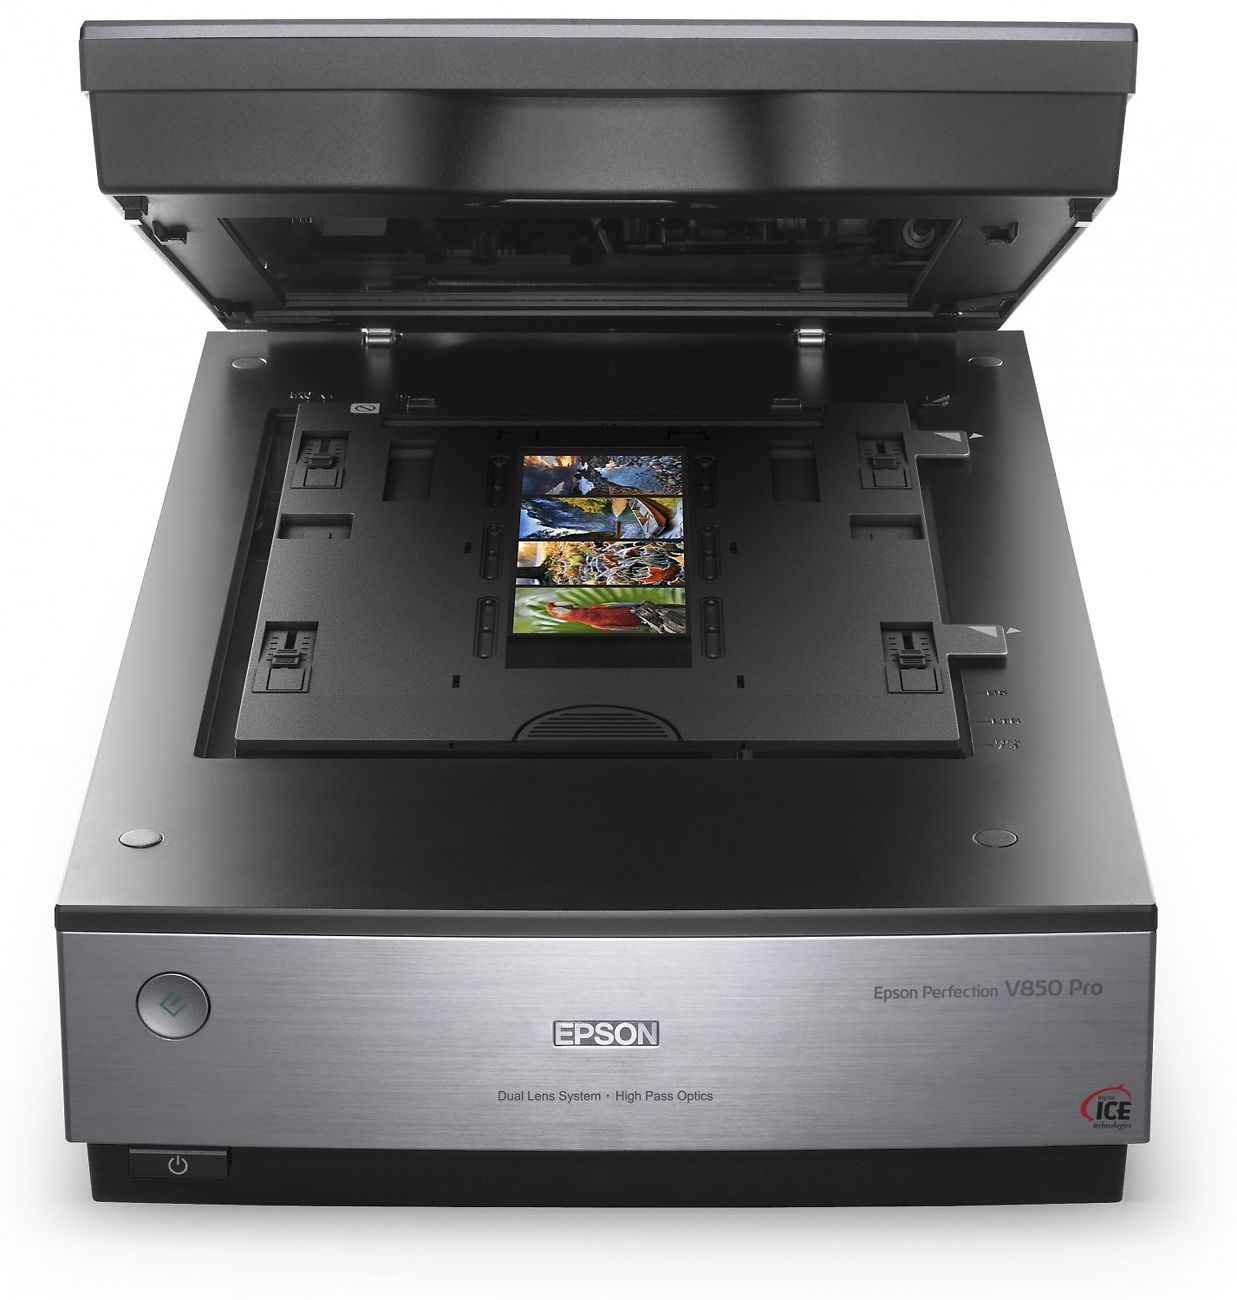 Epson Perfection V850 Scanner Image